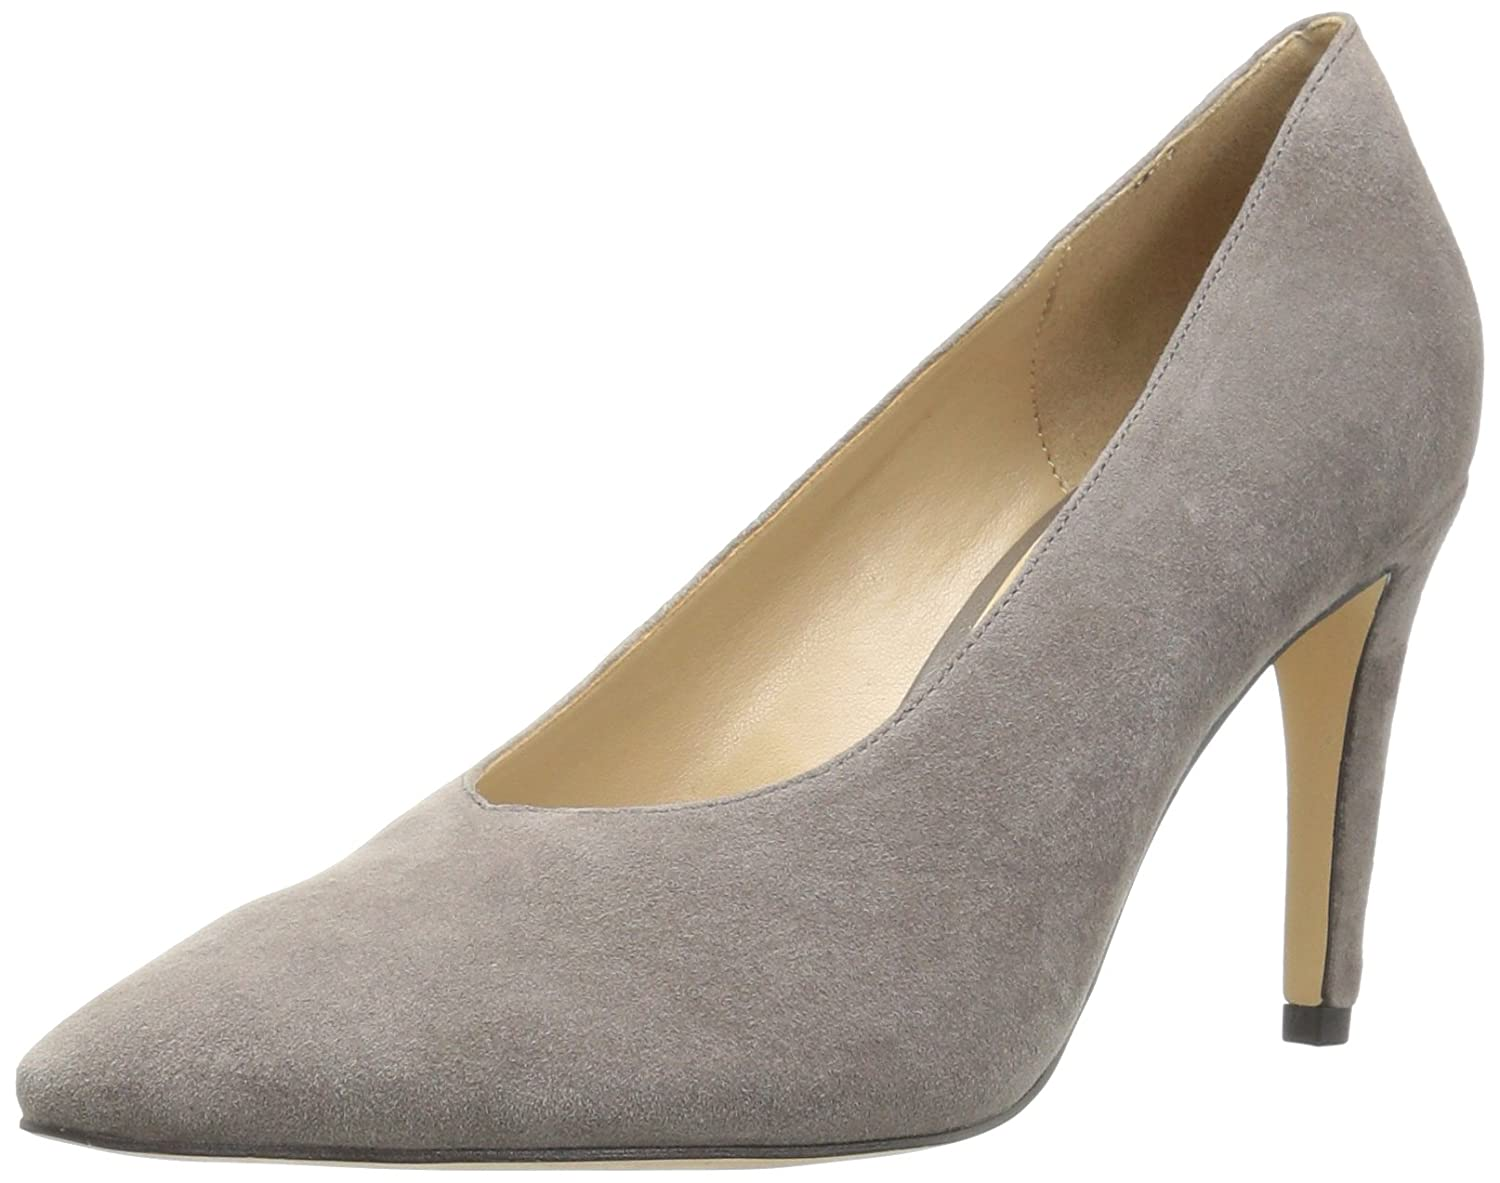 The Fix Women's Vail Choked-up Banana Heel Dress Pump B06XH77H4Q 7.5 B(M) US|Graphite Grey